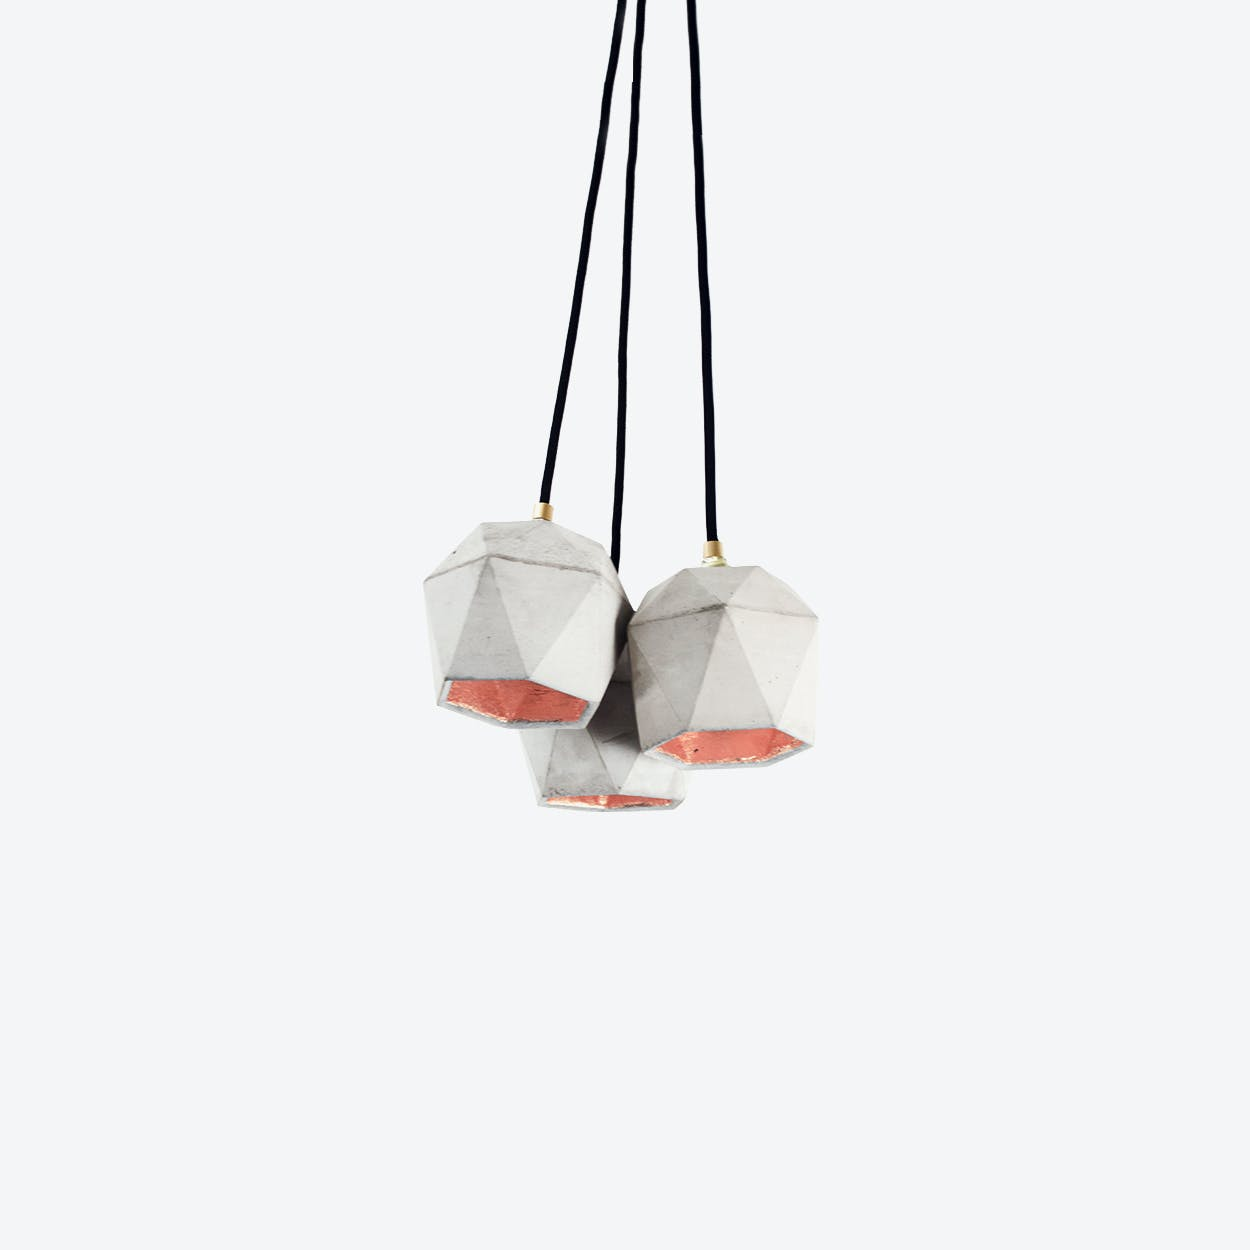 Concrete Bundle Pendant Light Triangle T2 in Light Grey and Copper